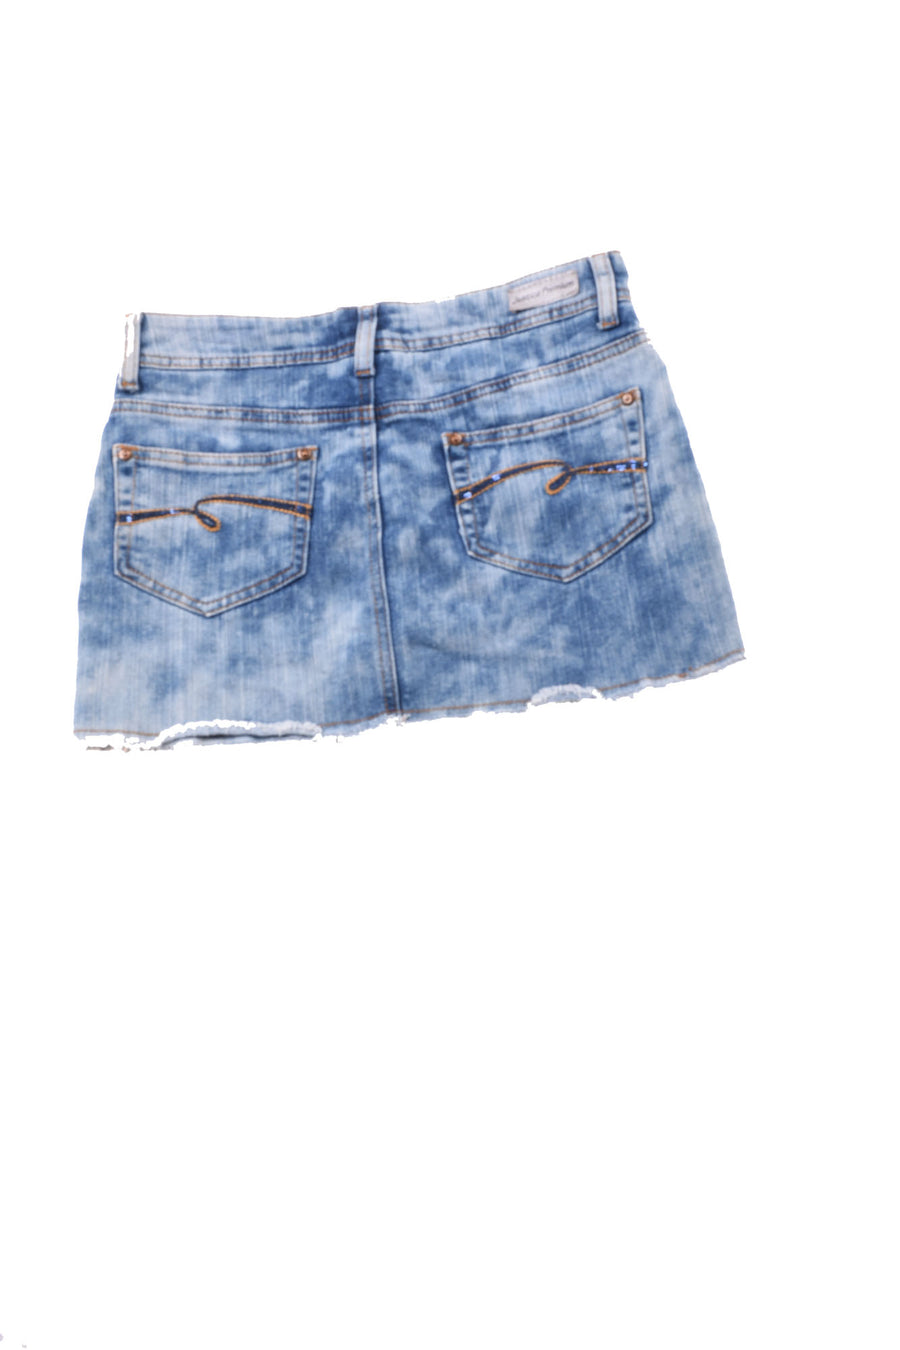 USED Justice Girl's Jeans 10 Blue